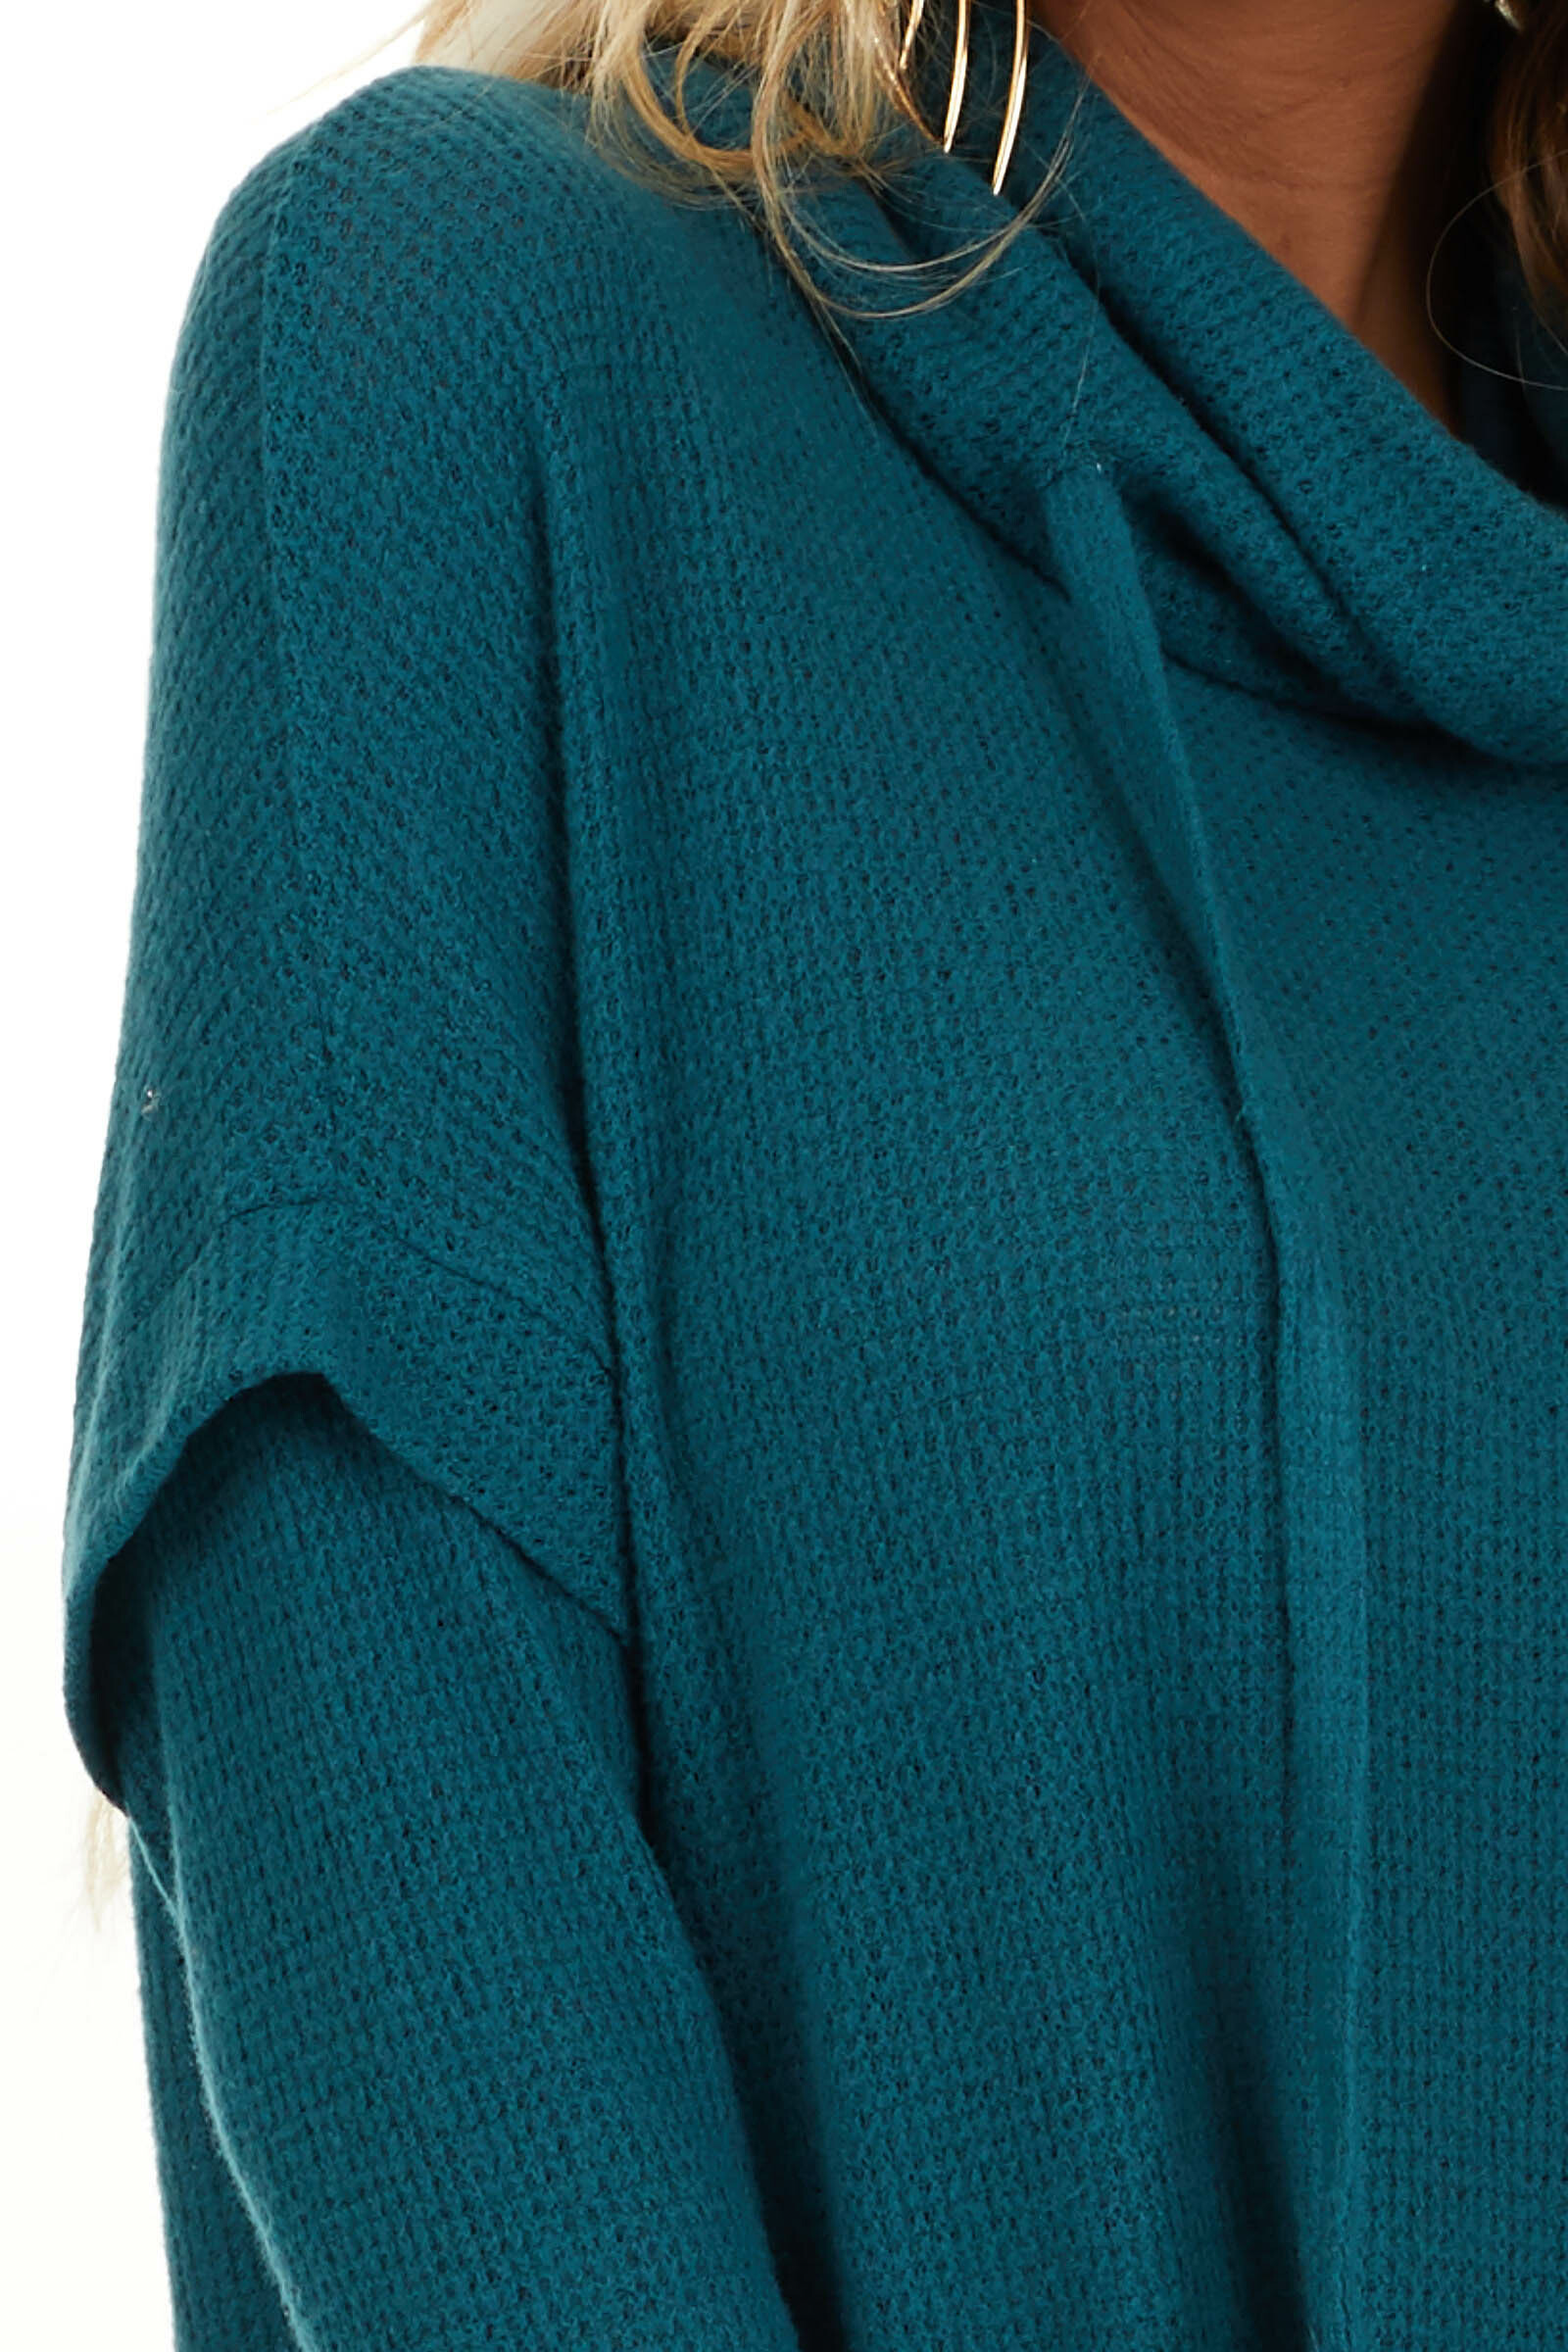 Dark Teal Waffle Knit Cowl Neck Top with Drawstrings detail